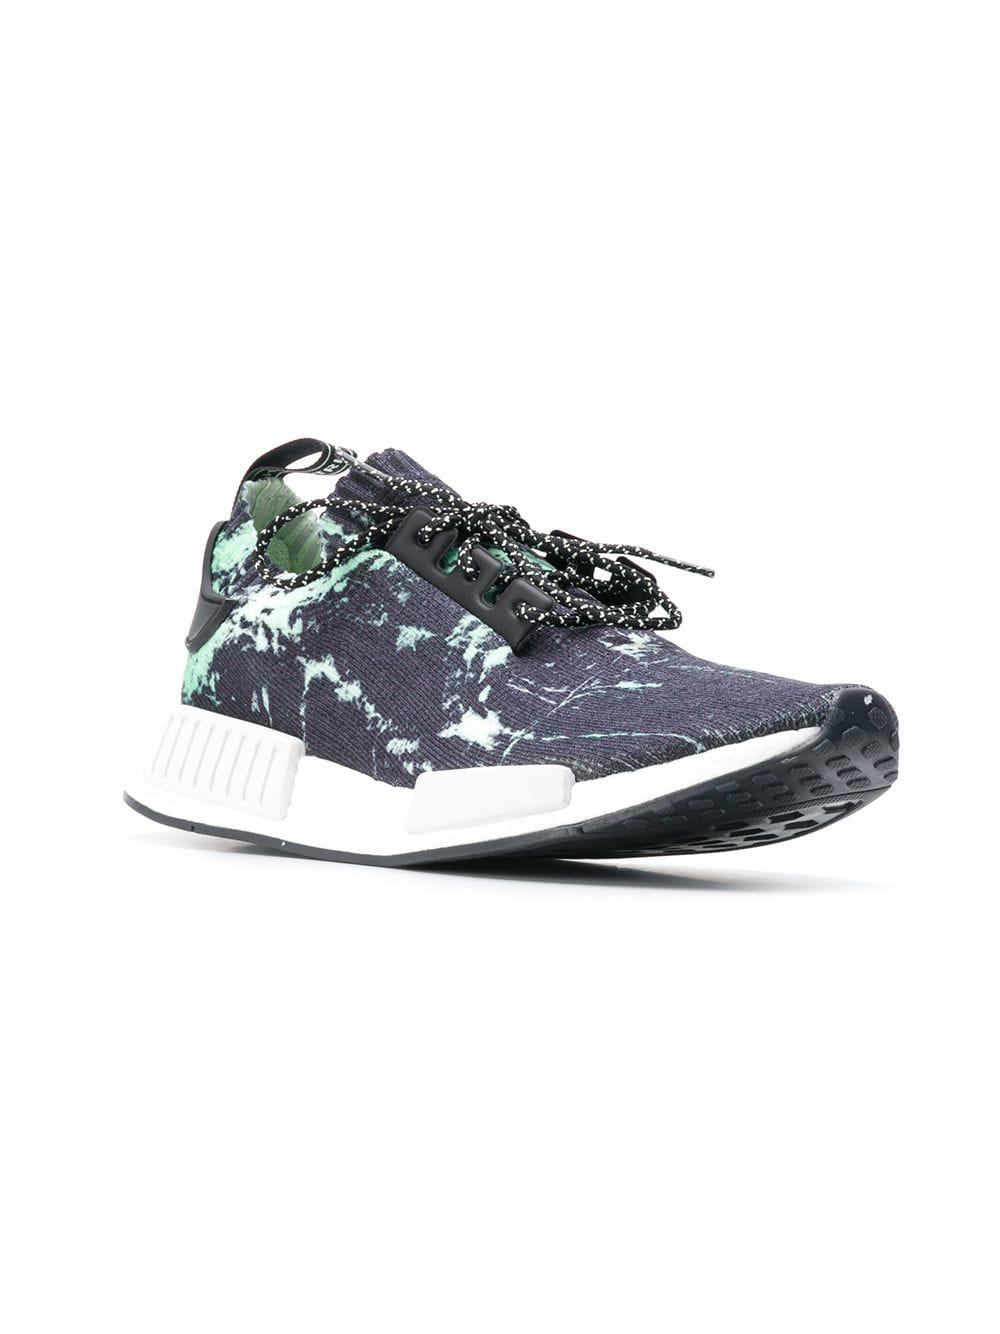 new arrival 5c68b 420a3 Lyst - adidas Nmd R1 Marble Primeknit Sneakers in Blue for Men